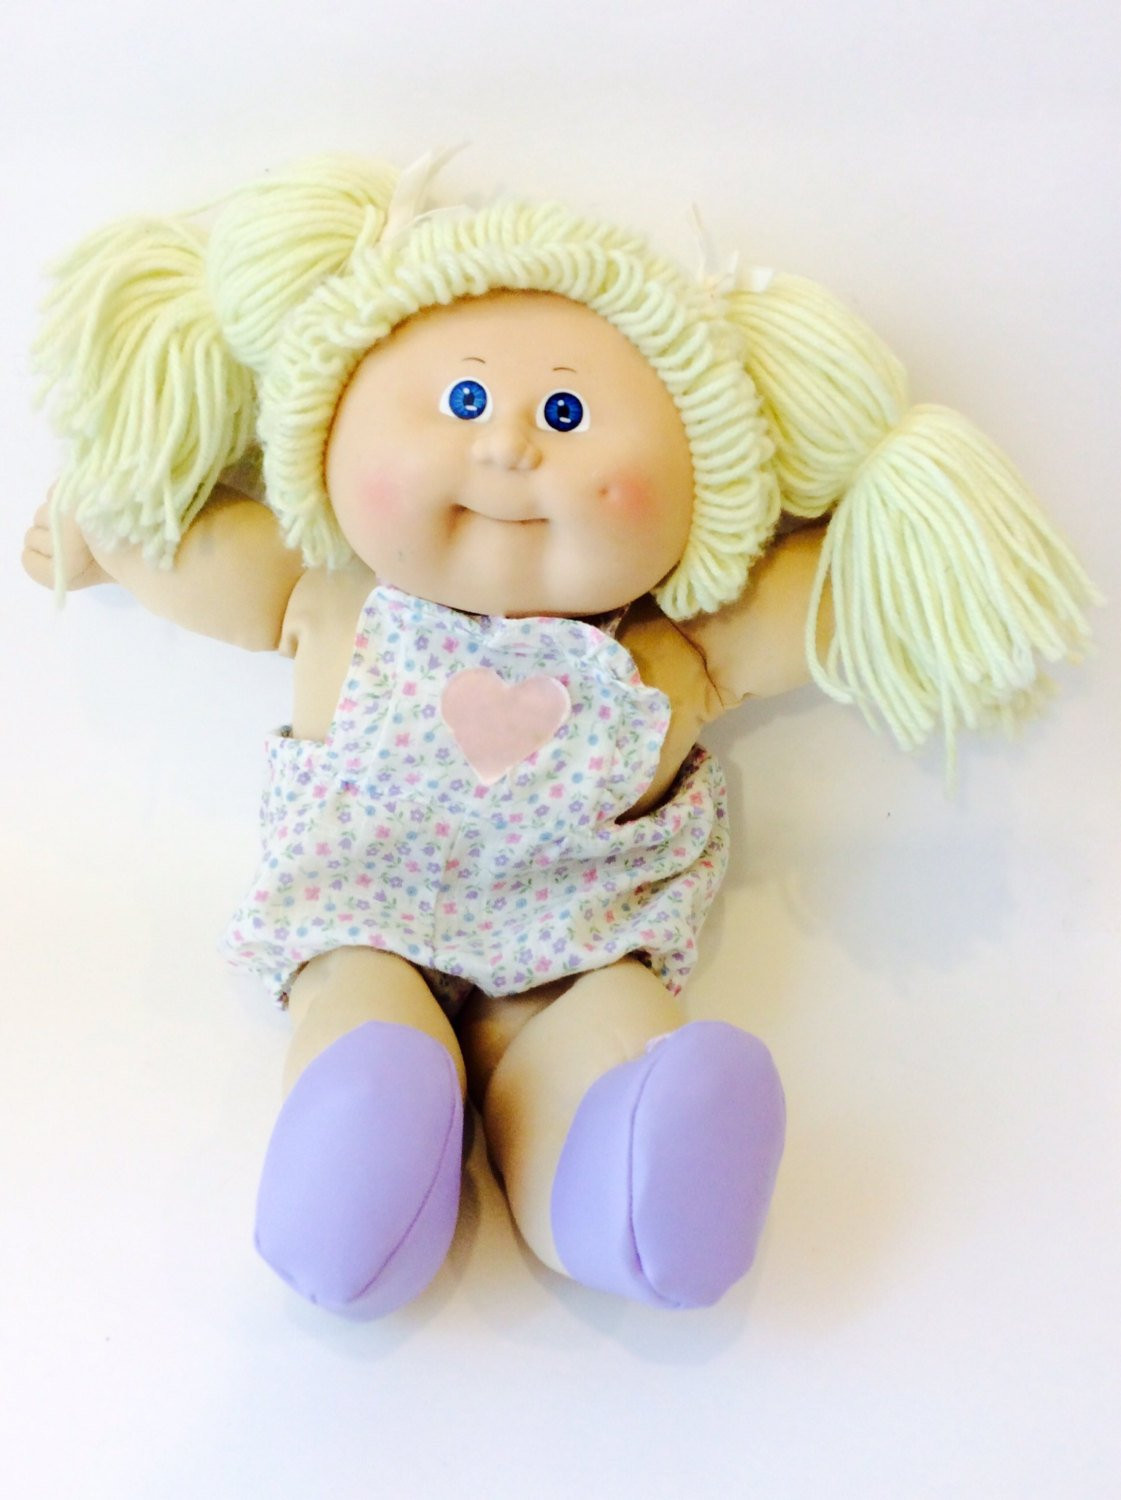 Inspirational Cabbage Patch Kid Vintage 1983 Cpk Doll Coleco Blonde Hair Collectible Cabbage Patch Dolls Of Luxury 42 Pics Collectible Cabbage Patch Dolls